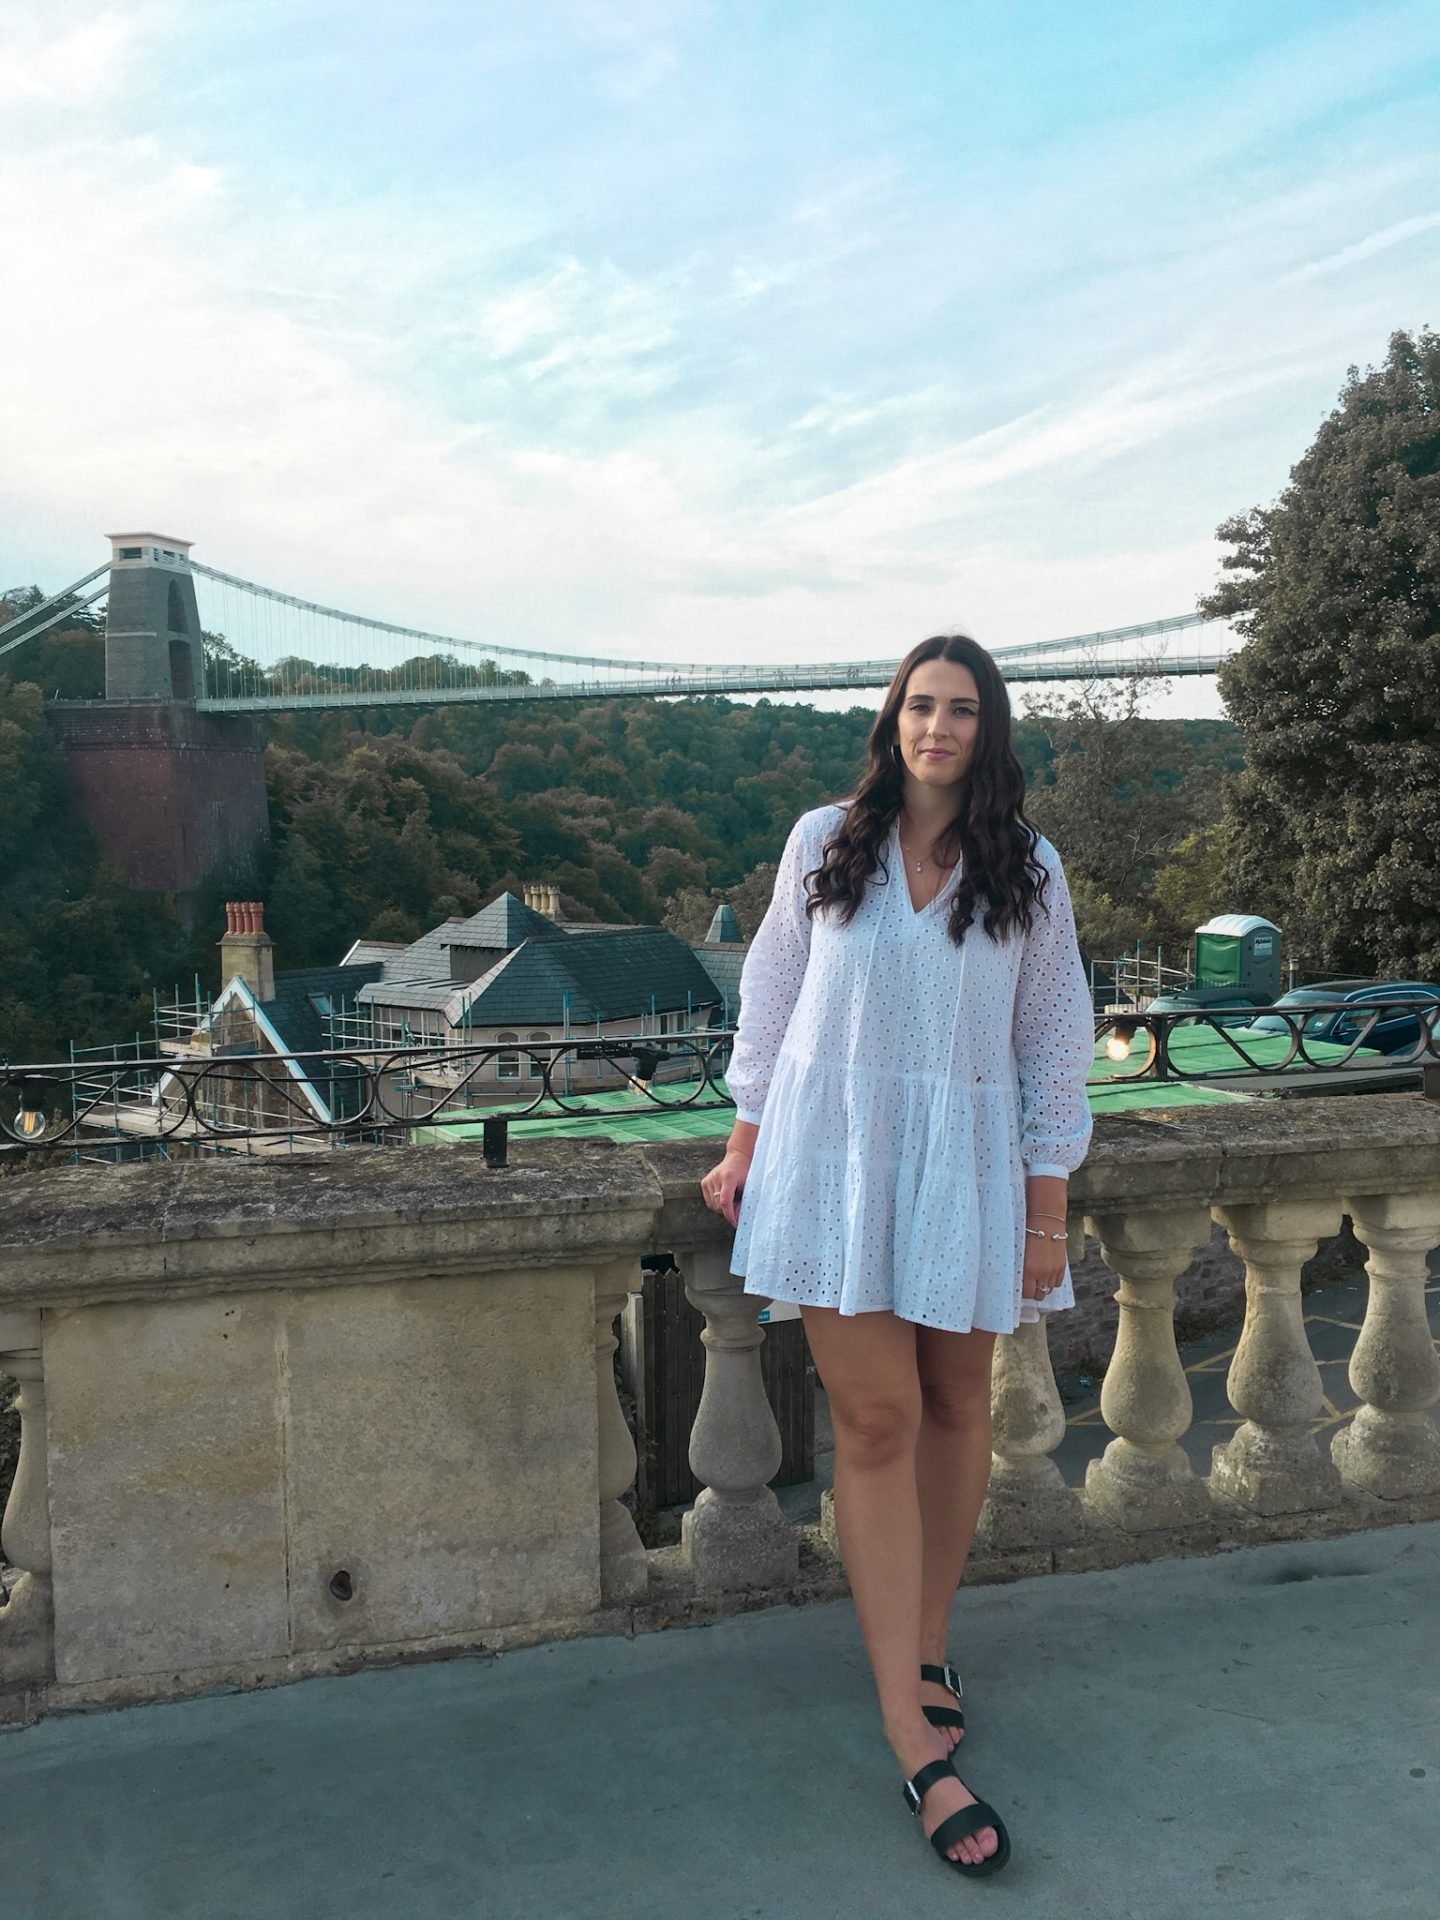 Girl in white dress looking at Bristol clifton suspension bridge